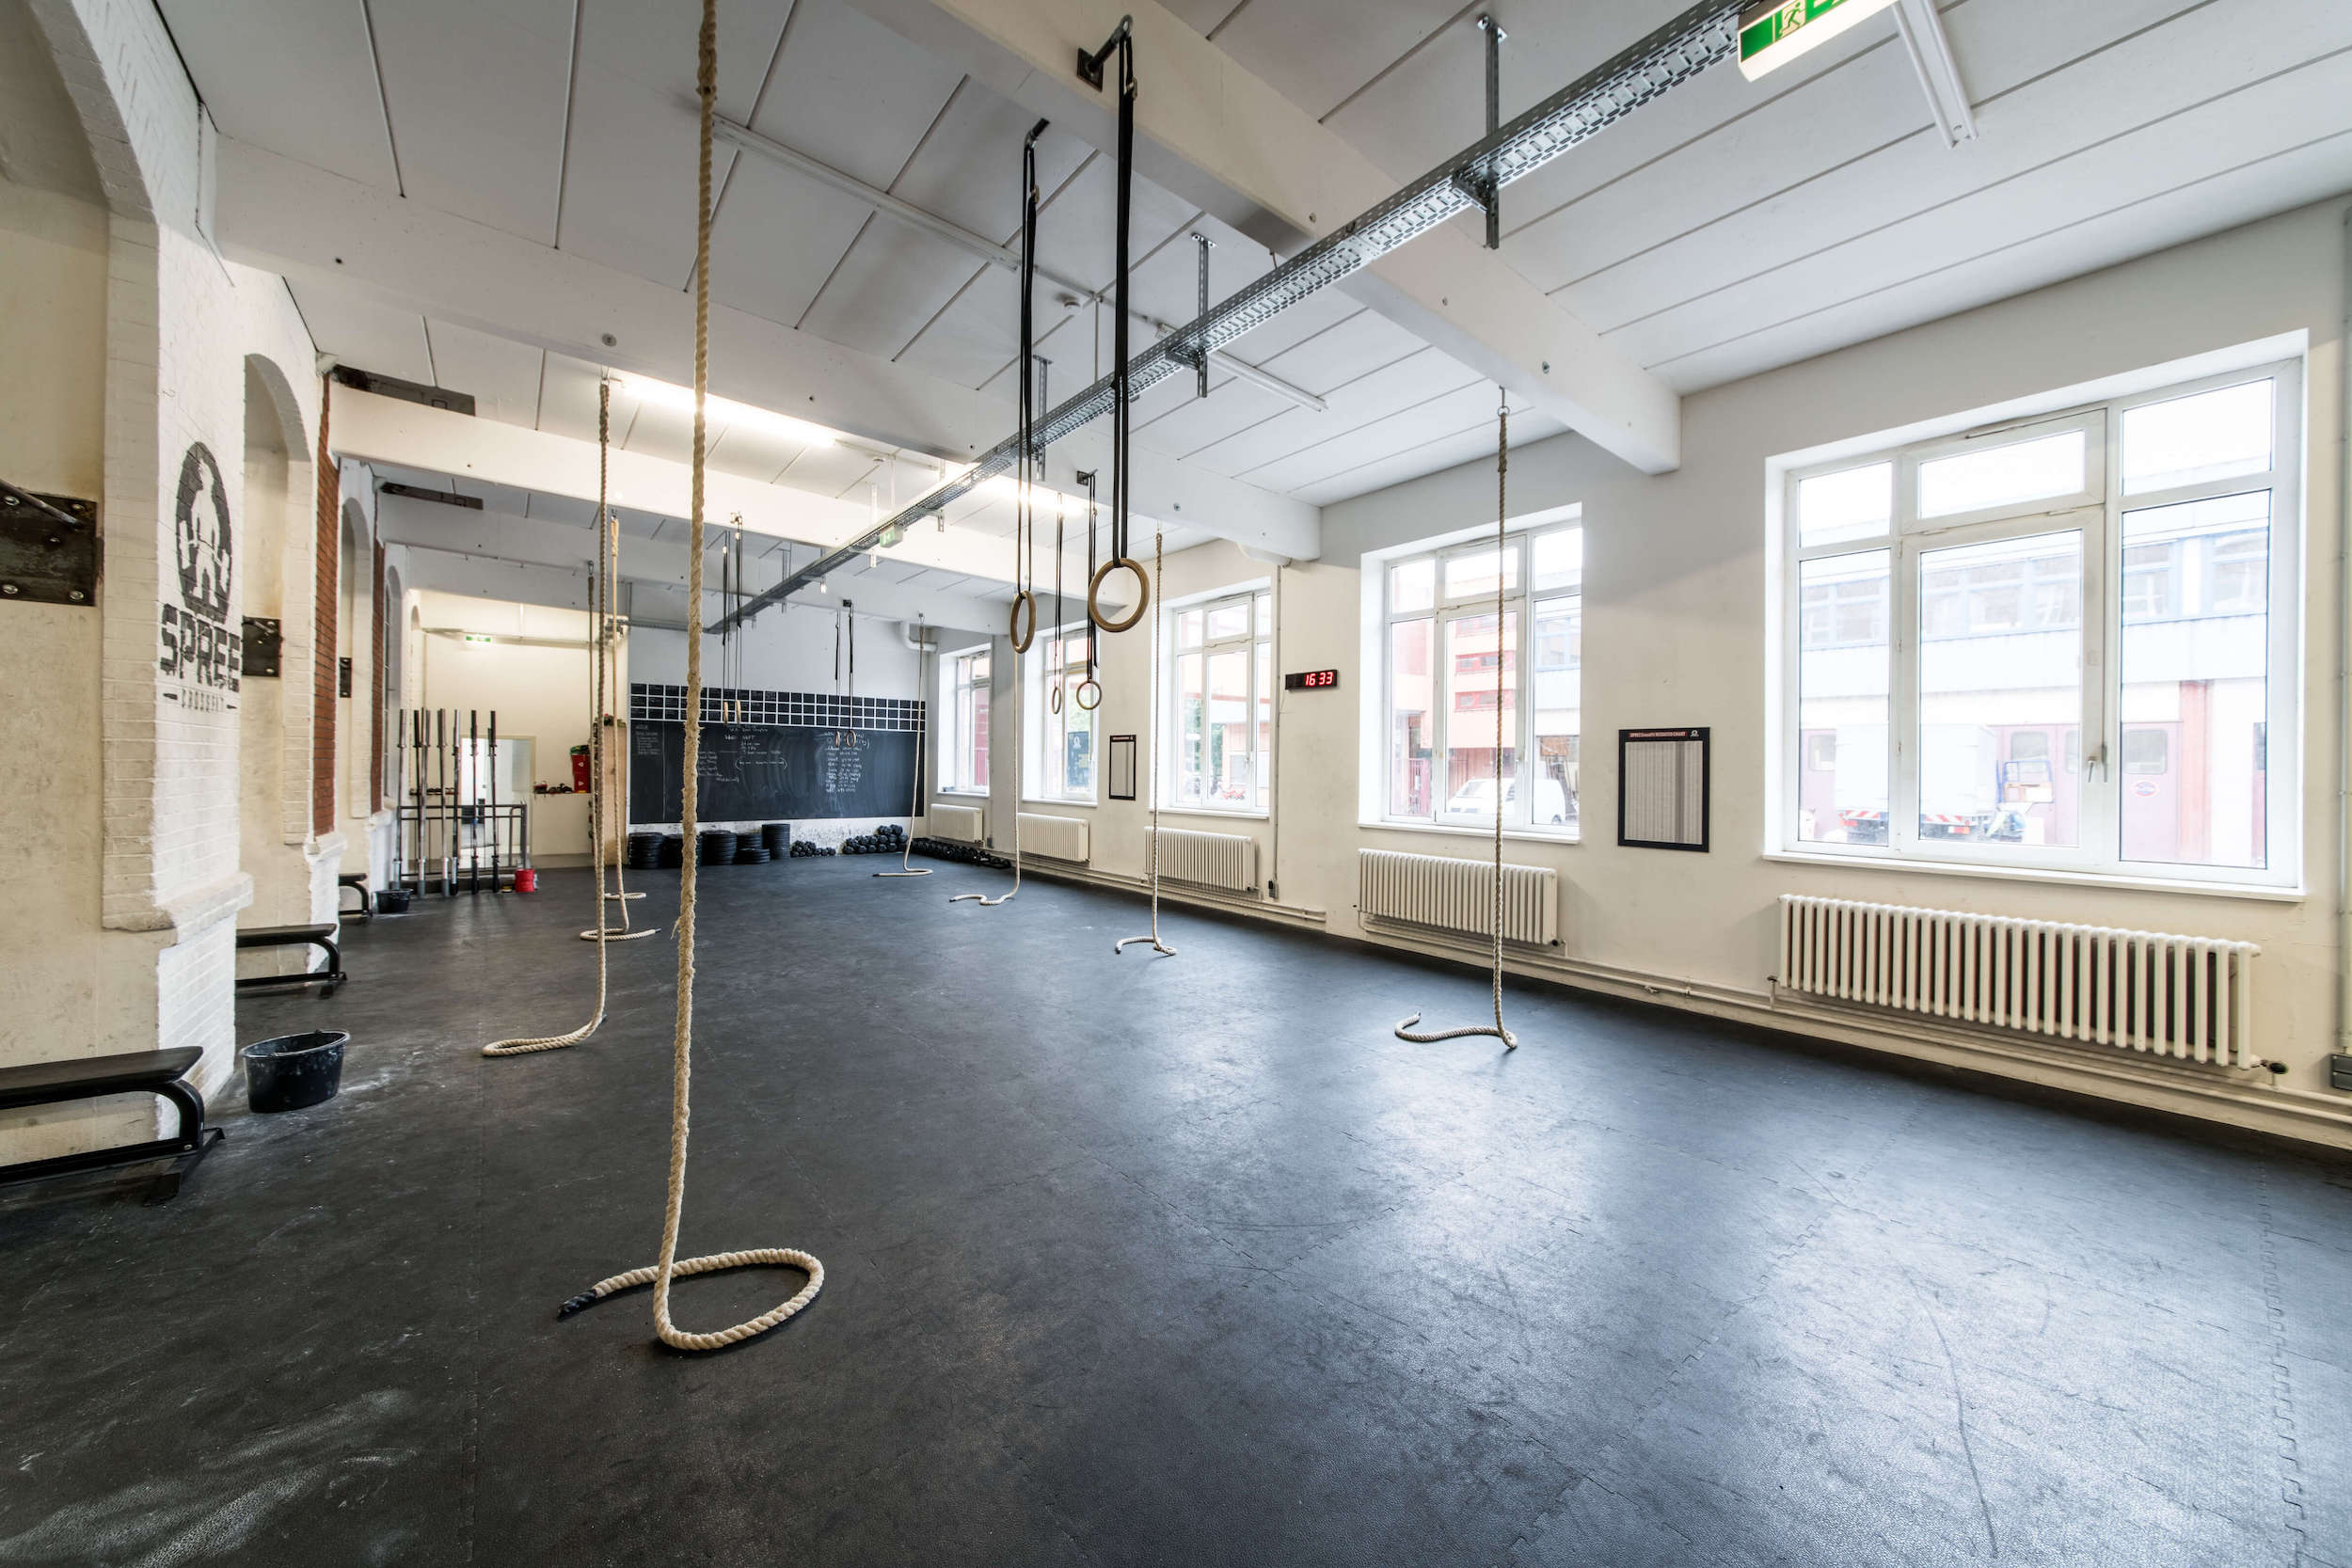 Spree CrossFit Box big Hall